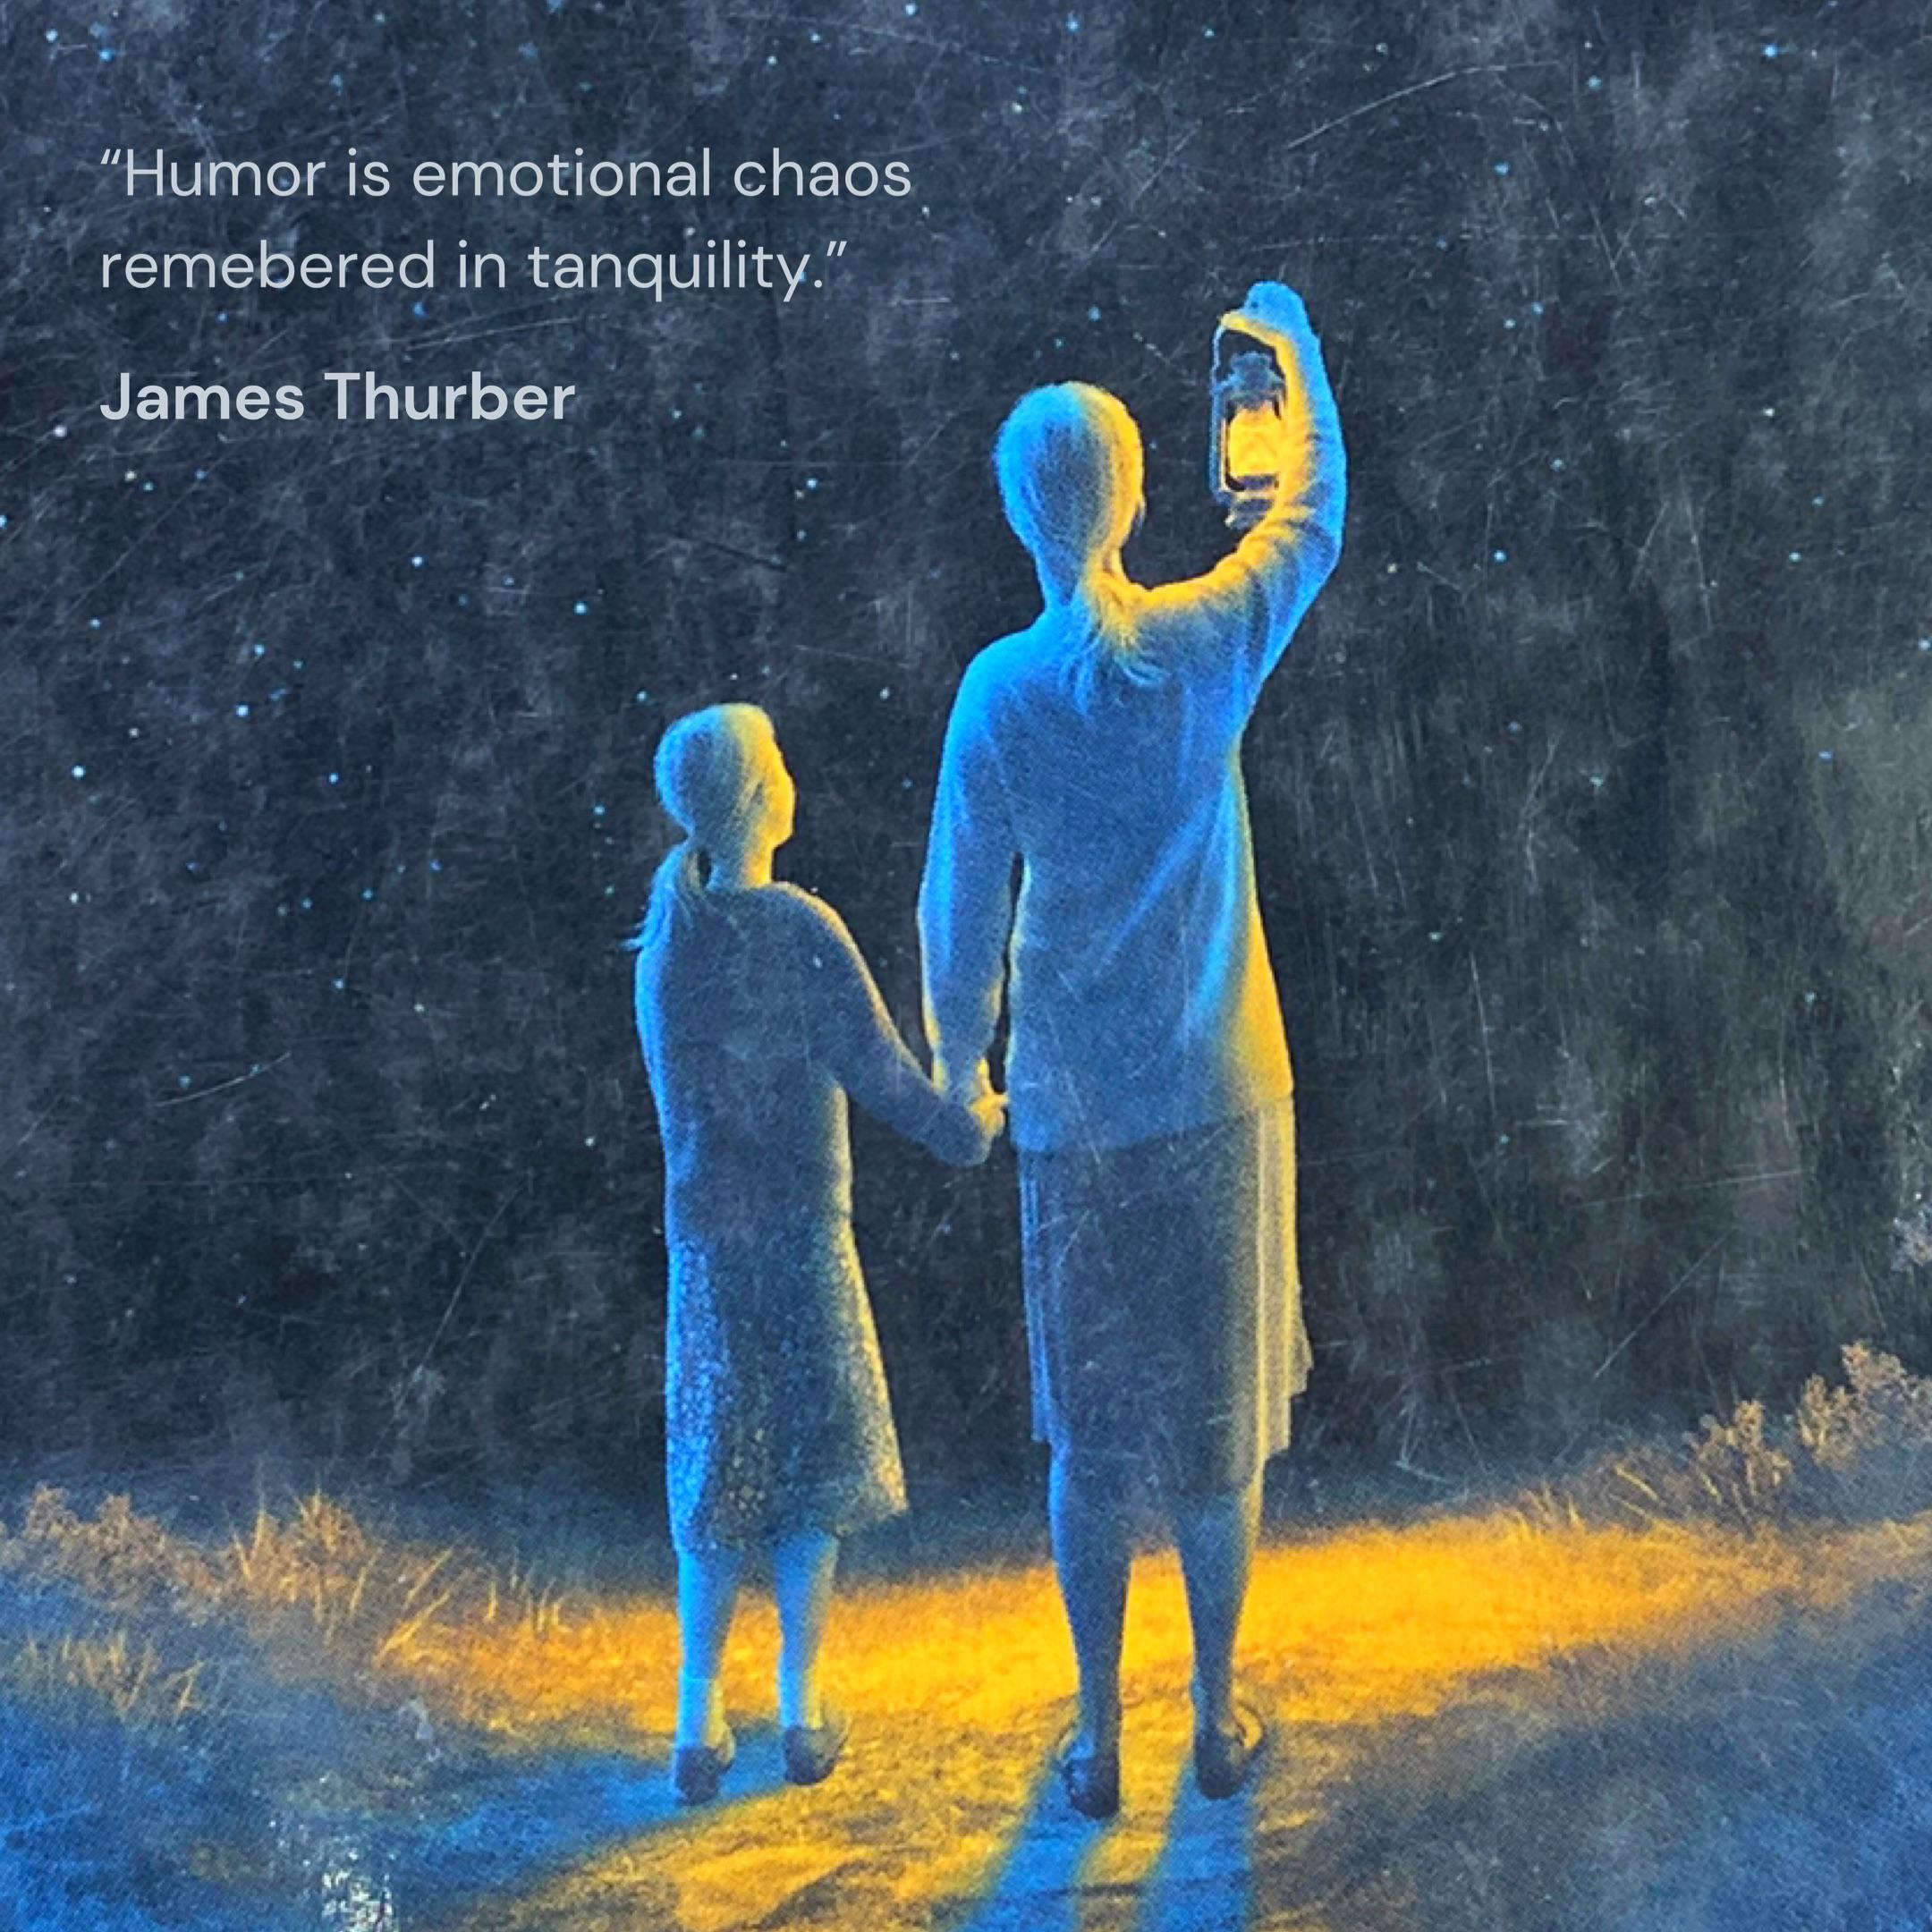 """Humor is emotional chaos remebered in tanquility."" James Thurber (800×800)"